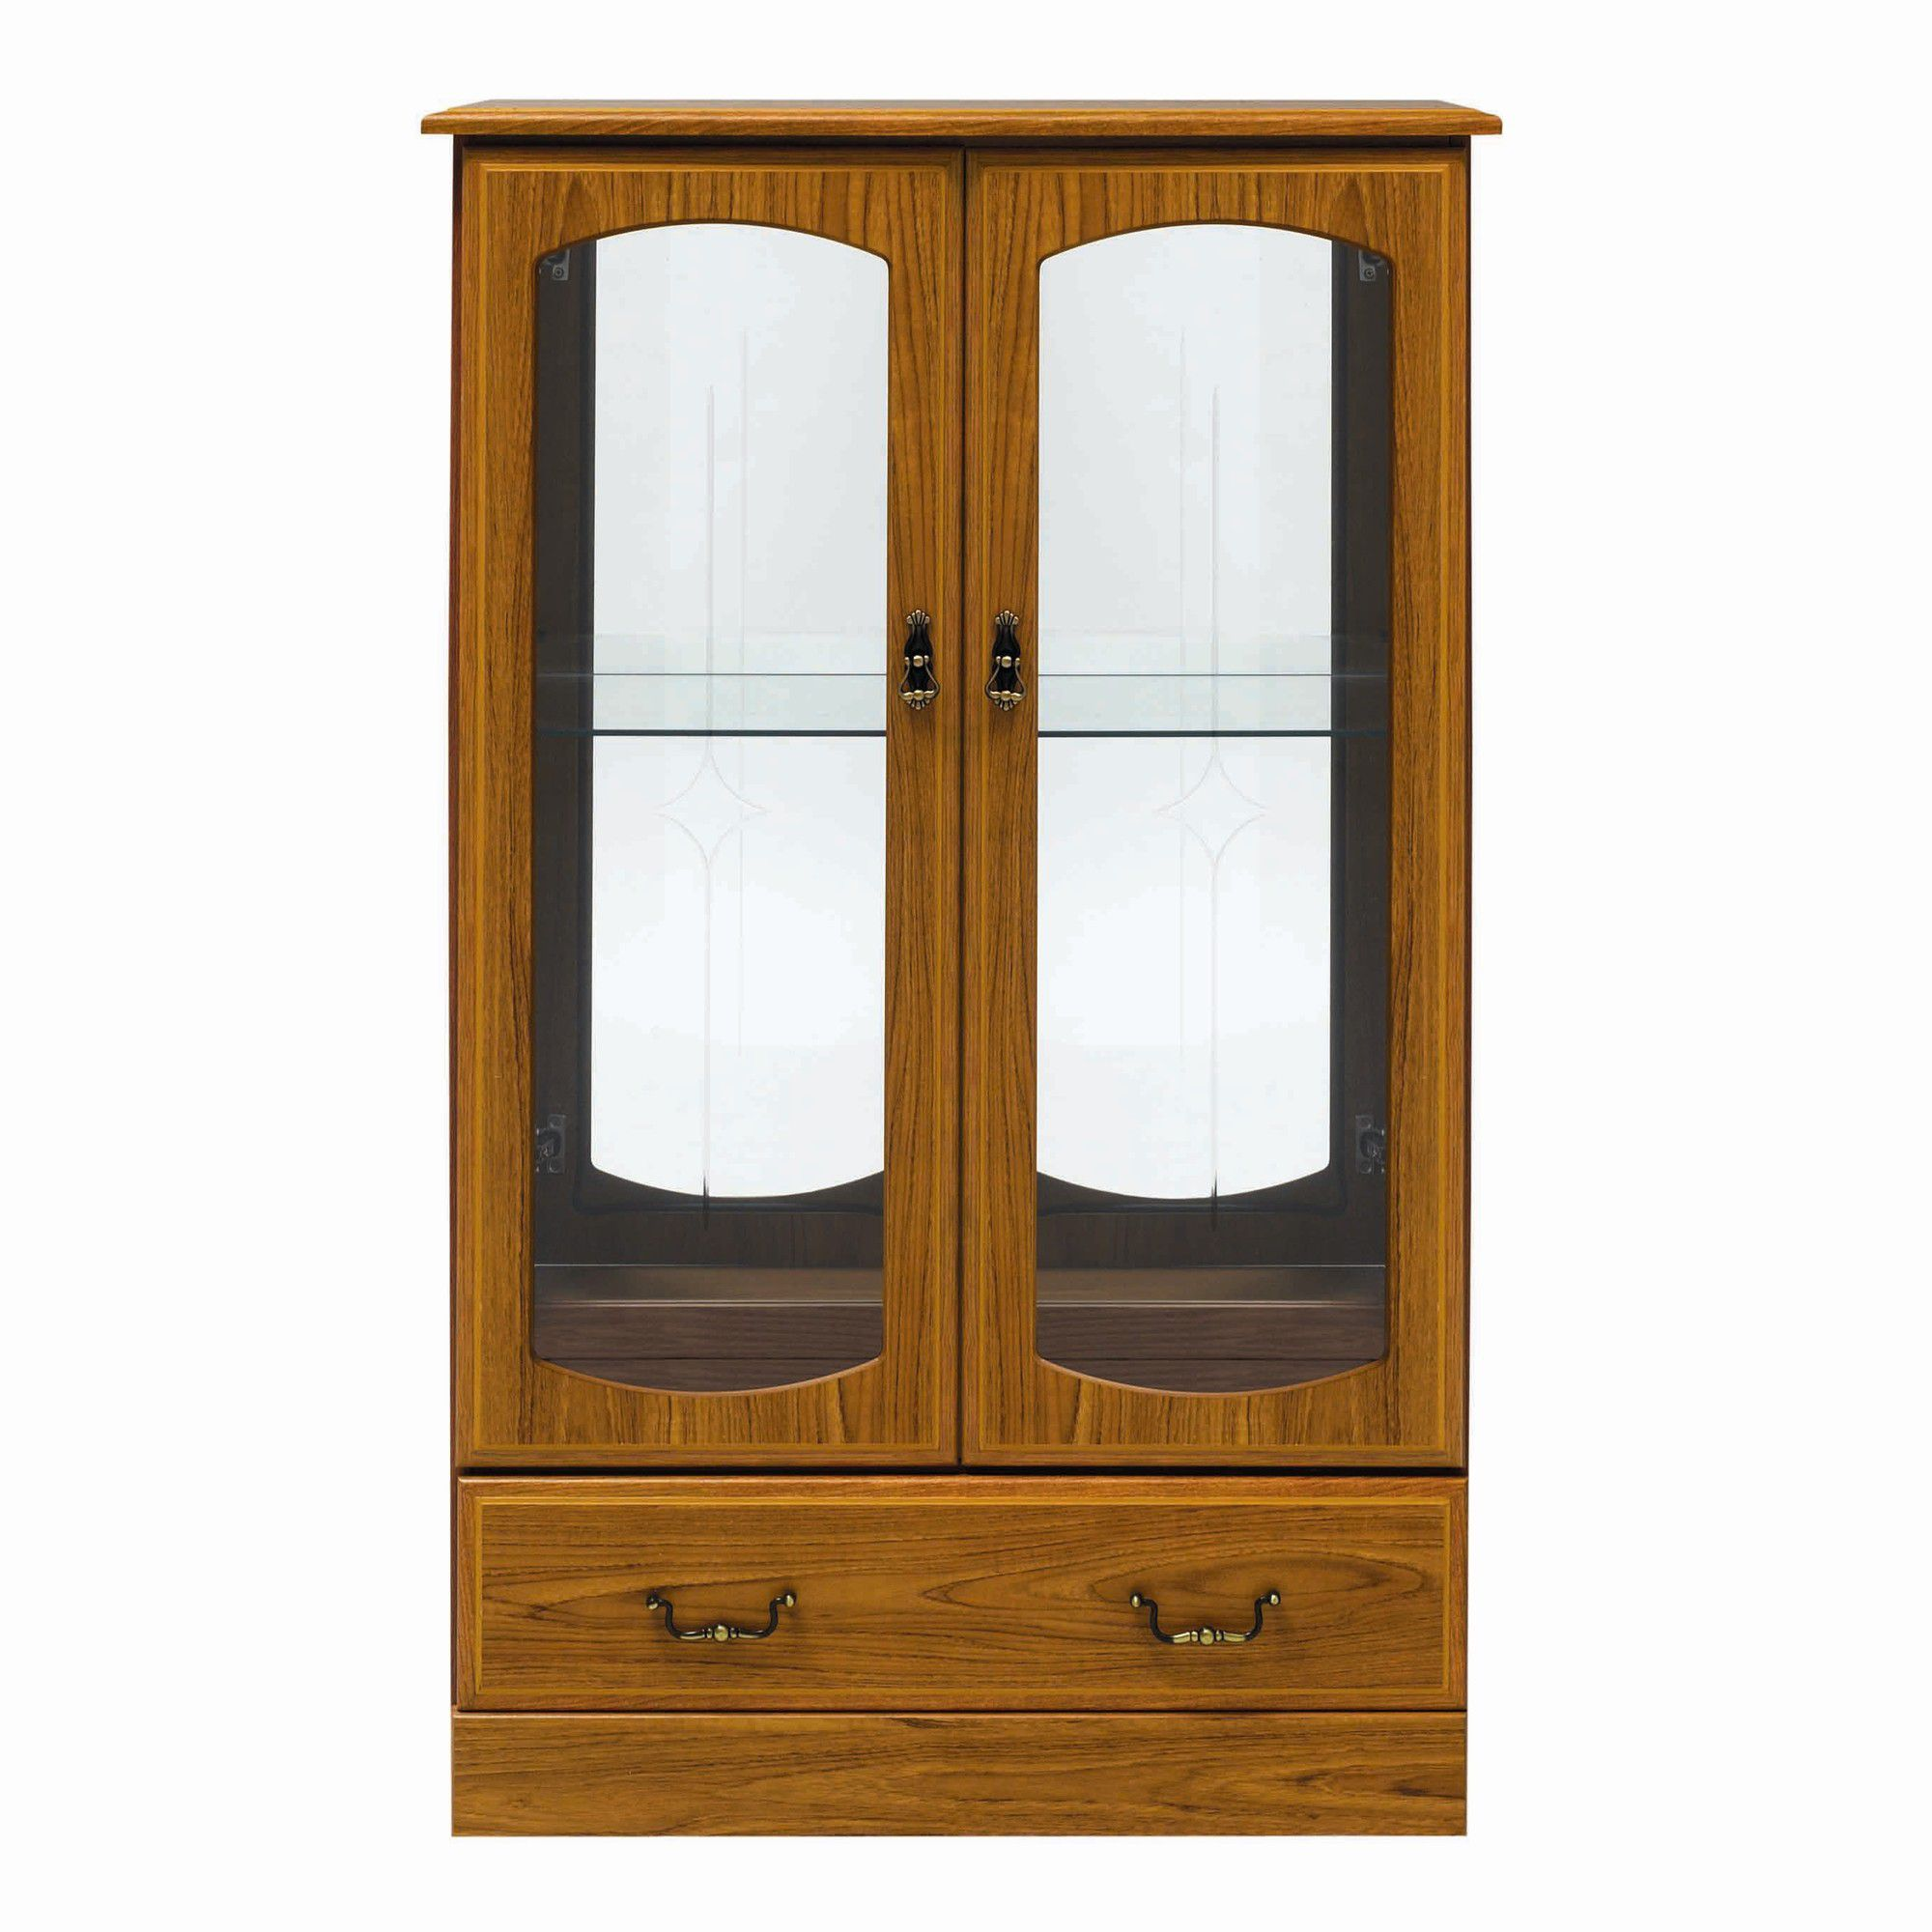 Caxton Tennyson Low Display Cabinet in Teak at Tesco Direct